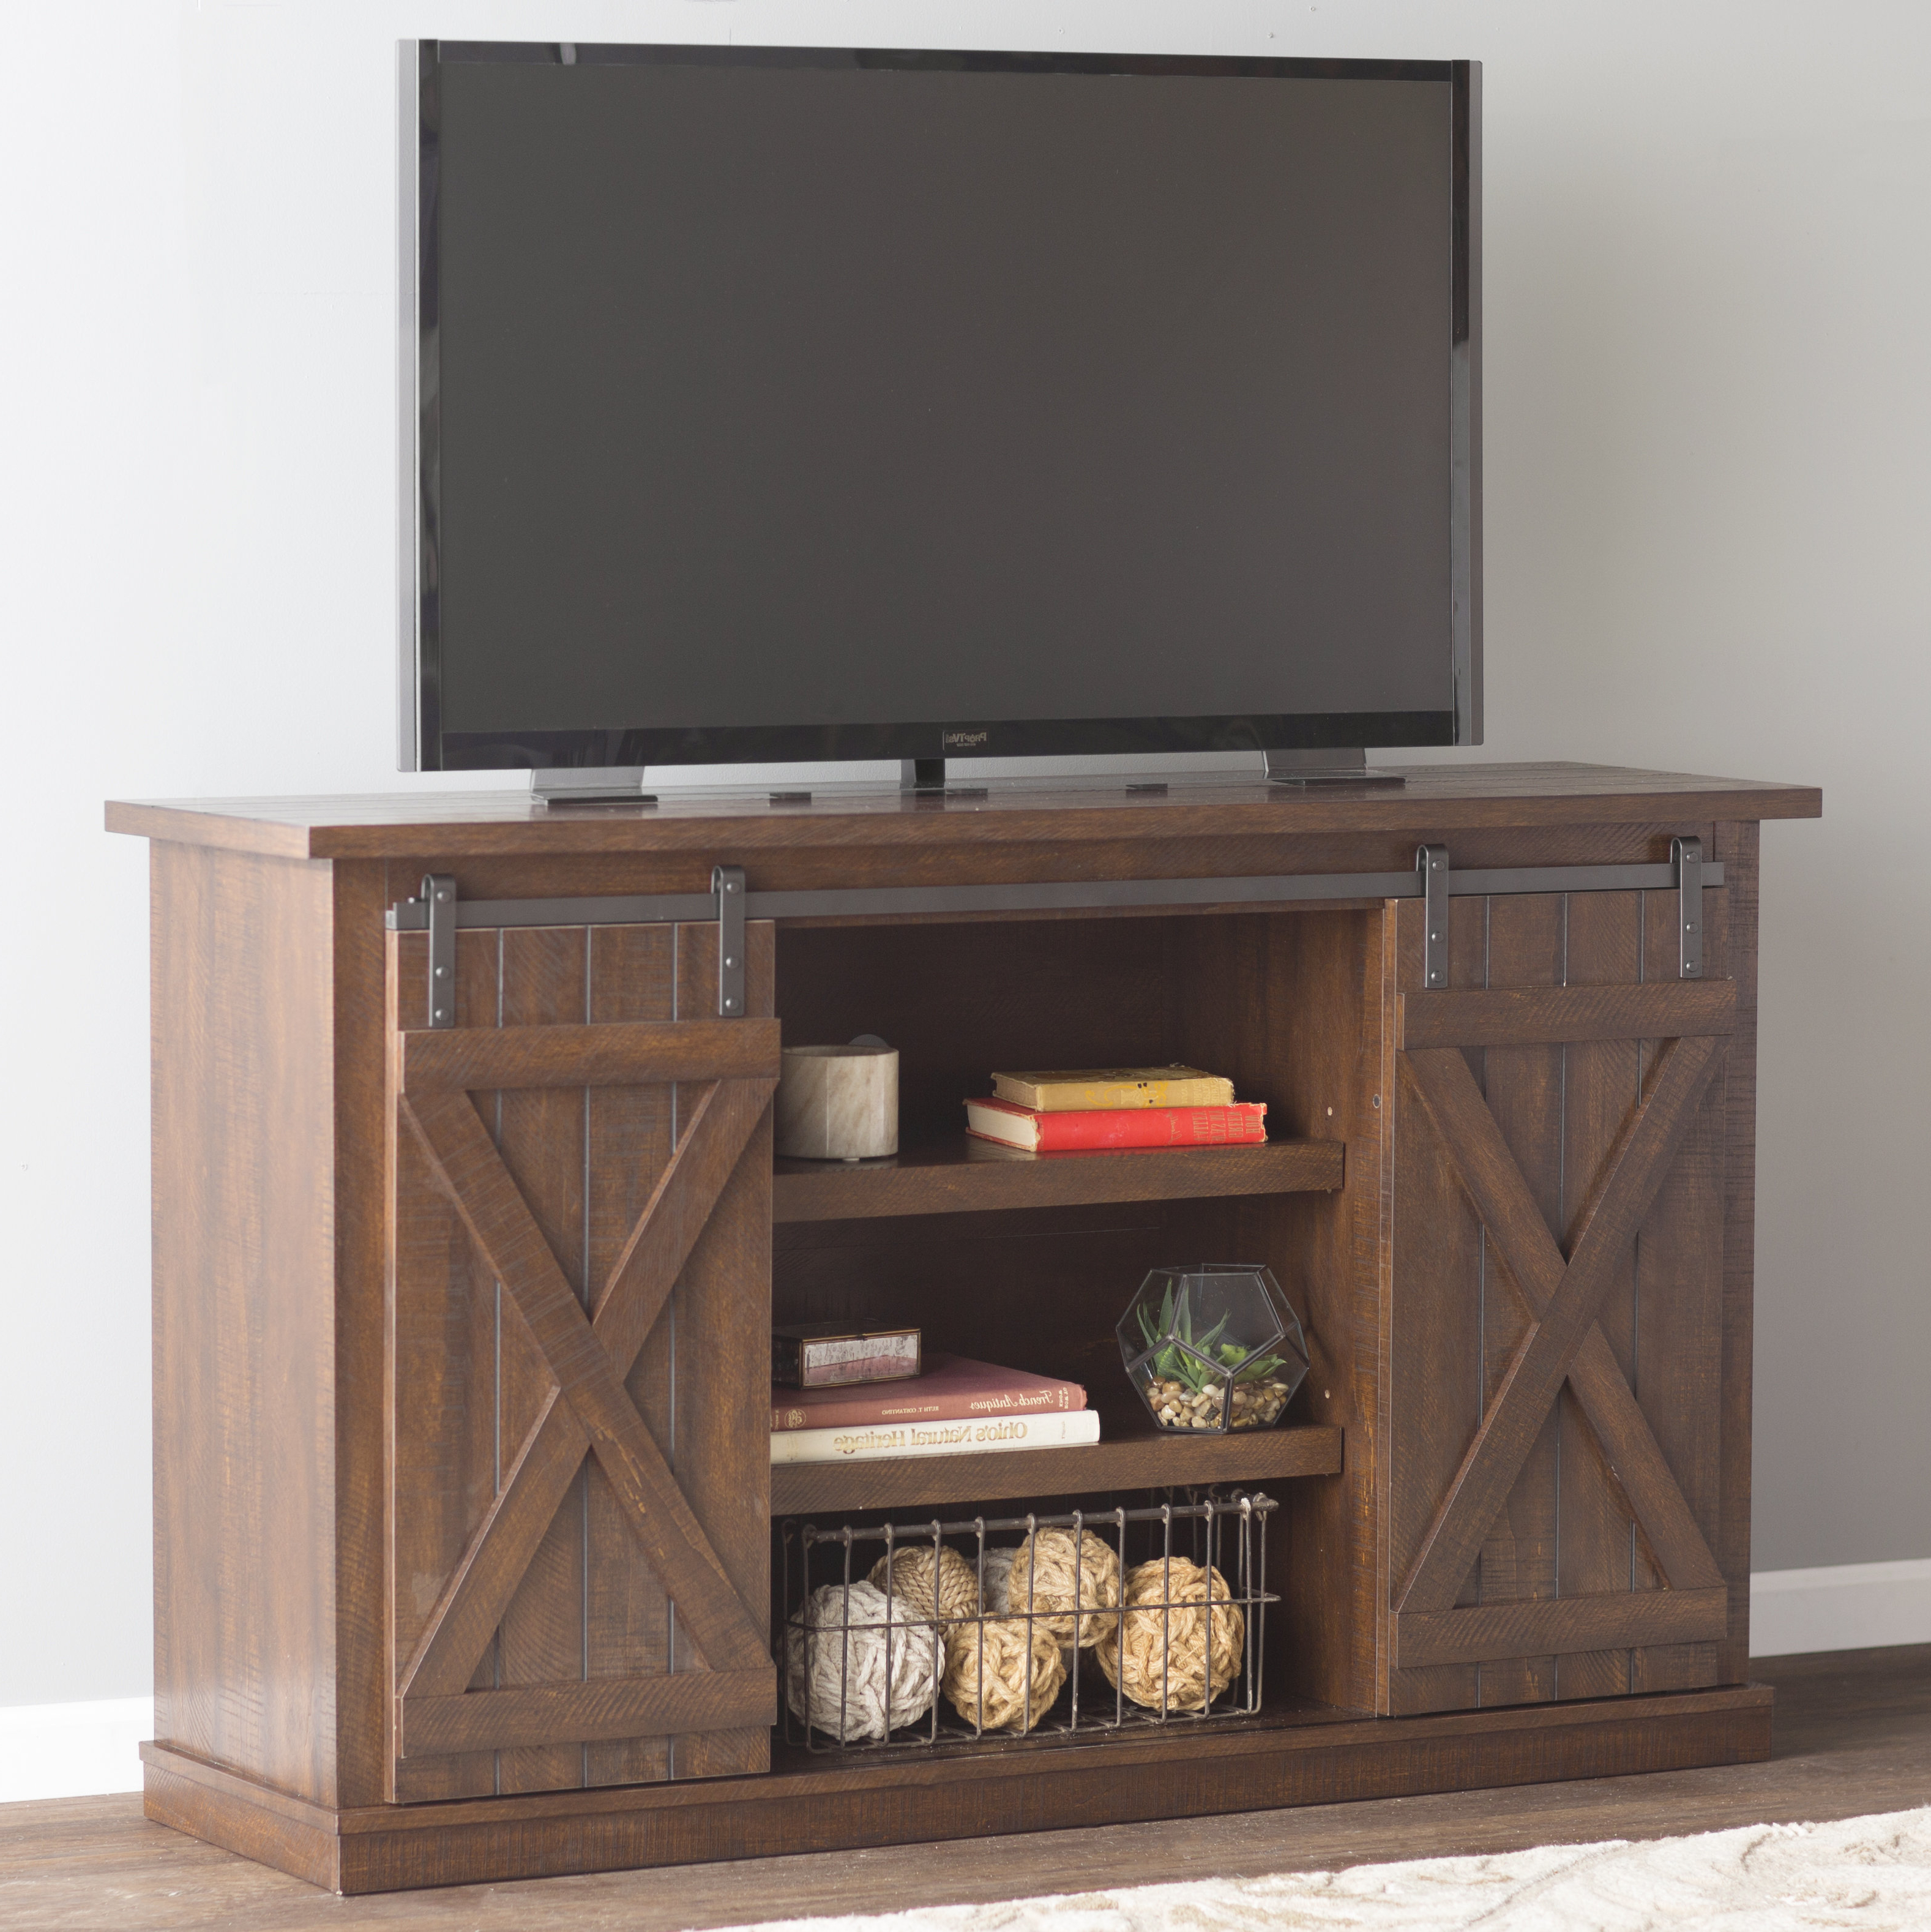 Tv Stands & Entertainment Centers You'll Love In Best And Newest Tv Stands For Large Tvs (View 12 of 20)